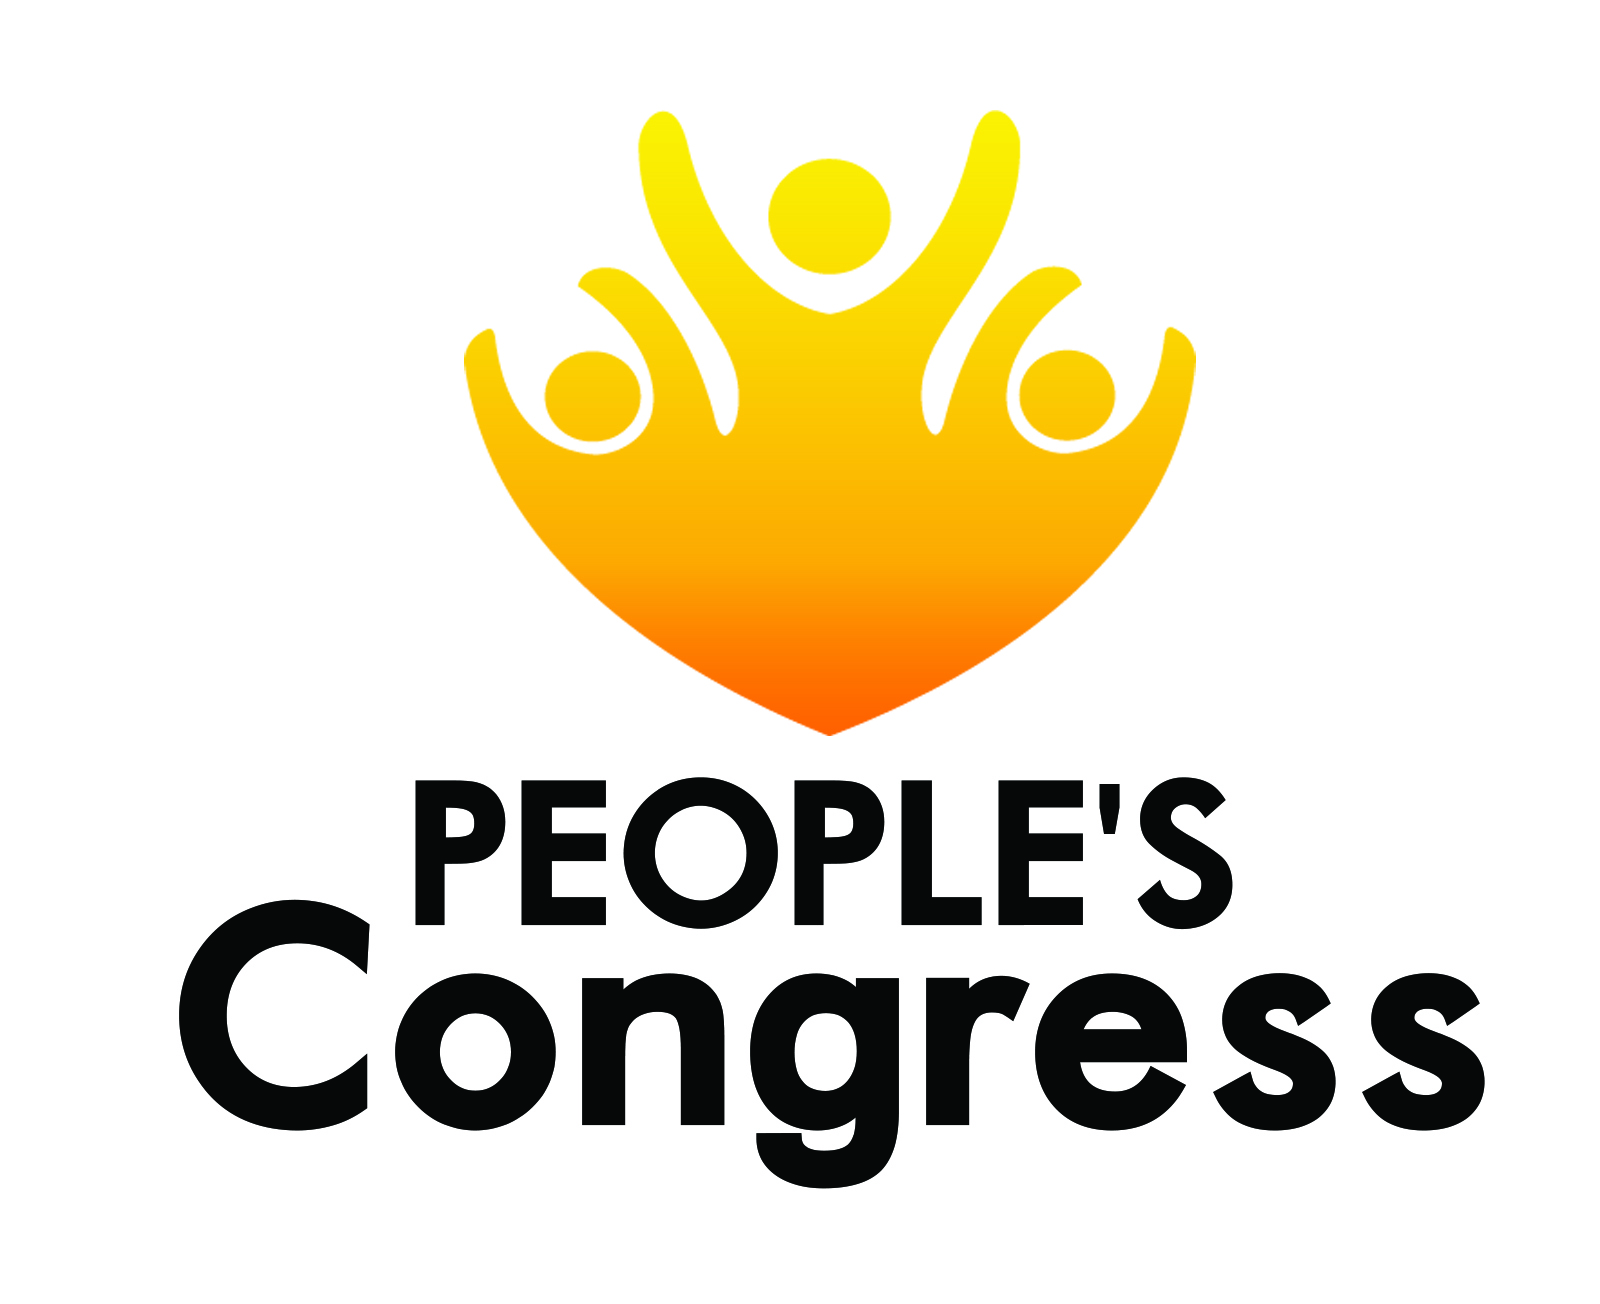 Peoplescongress-2_(3)